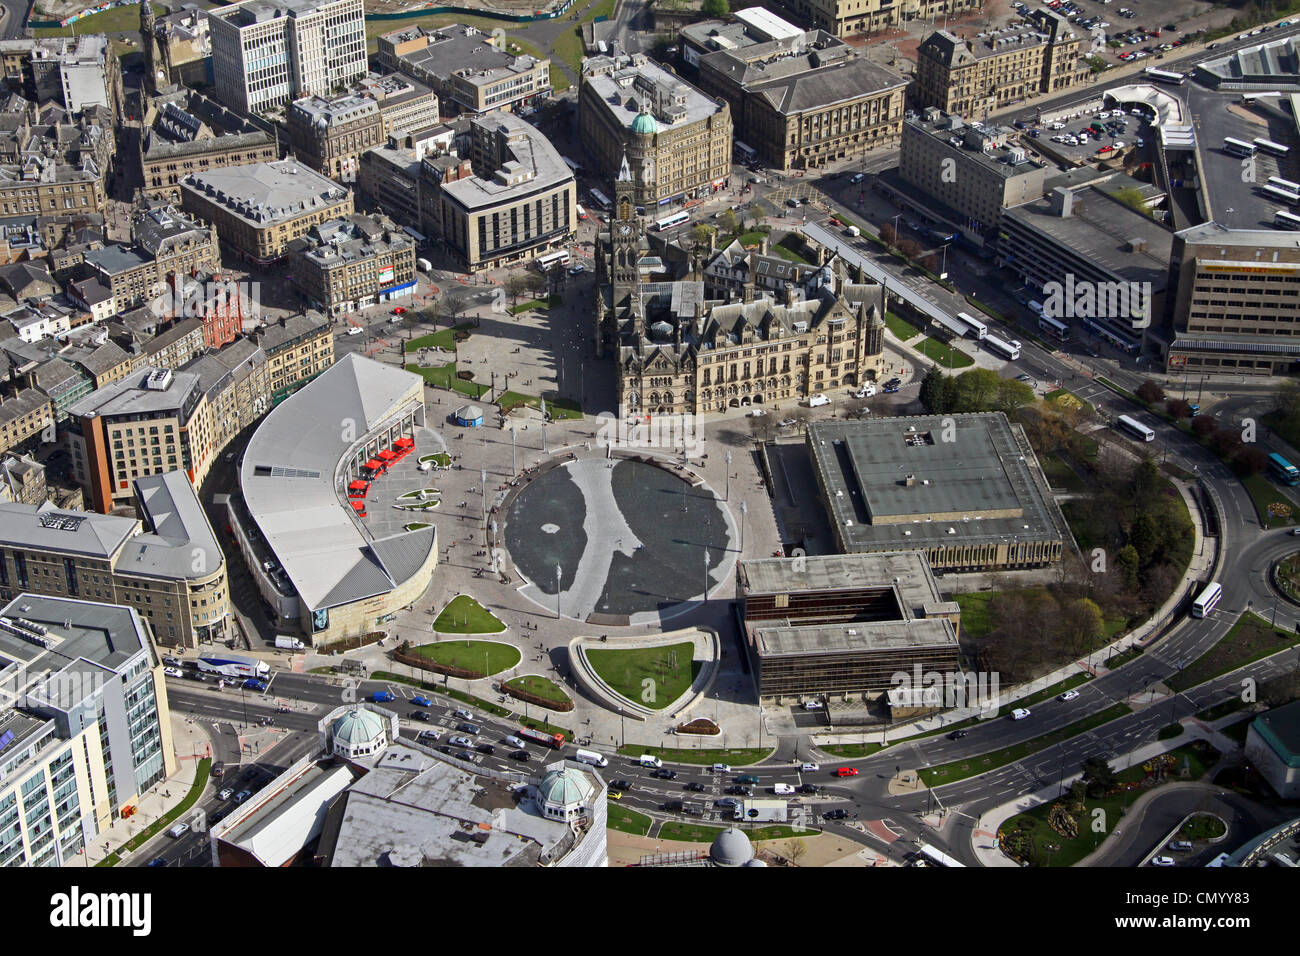 Aerial view of Centenary Square, Bradford, West Yorkshire - Stock Image